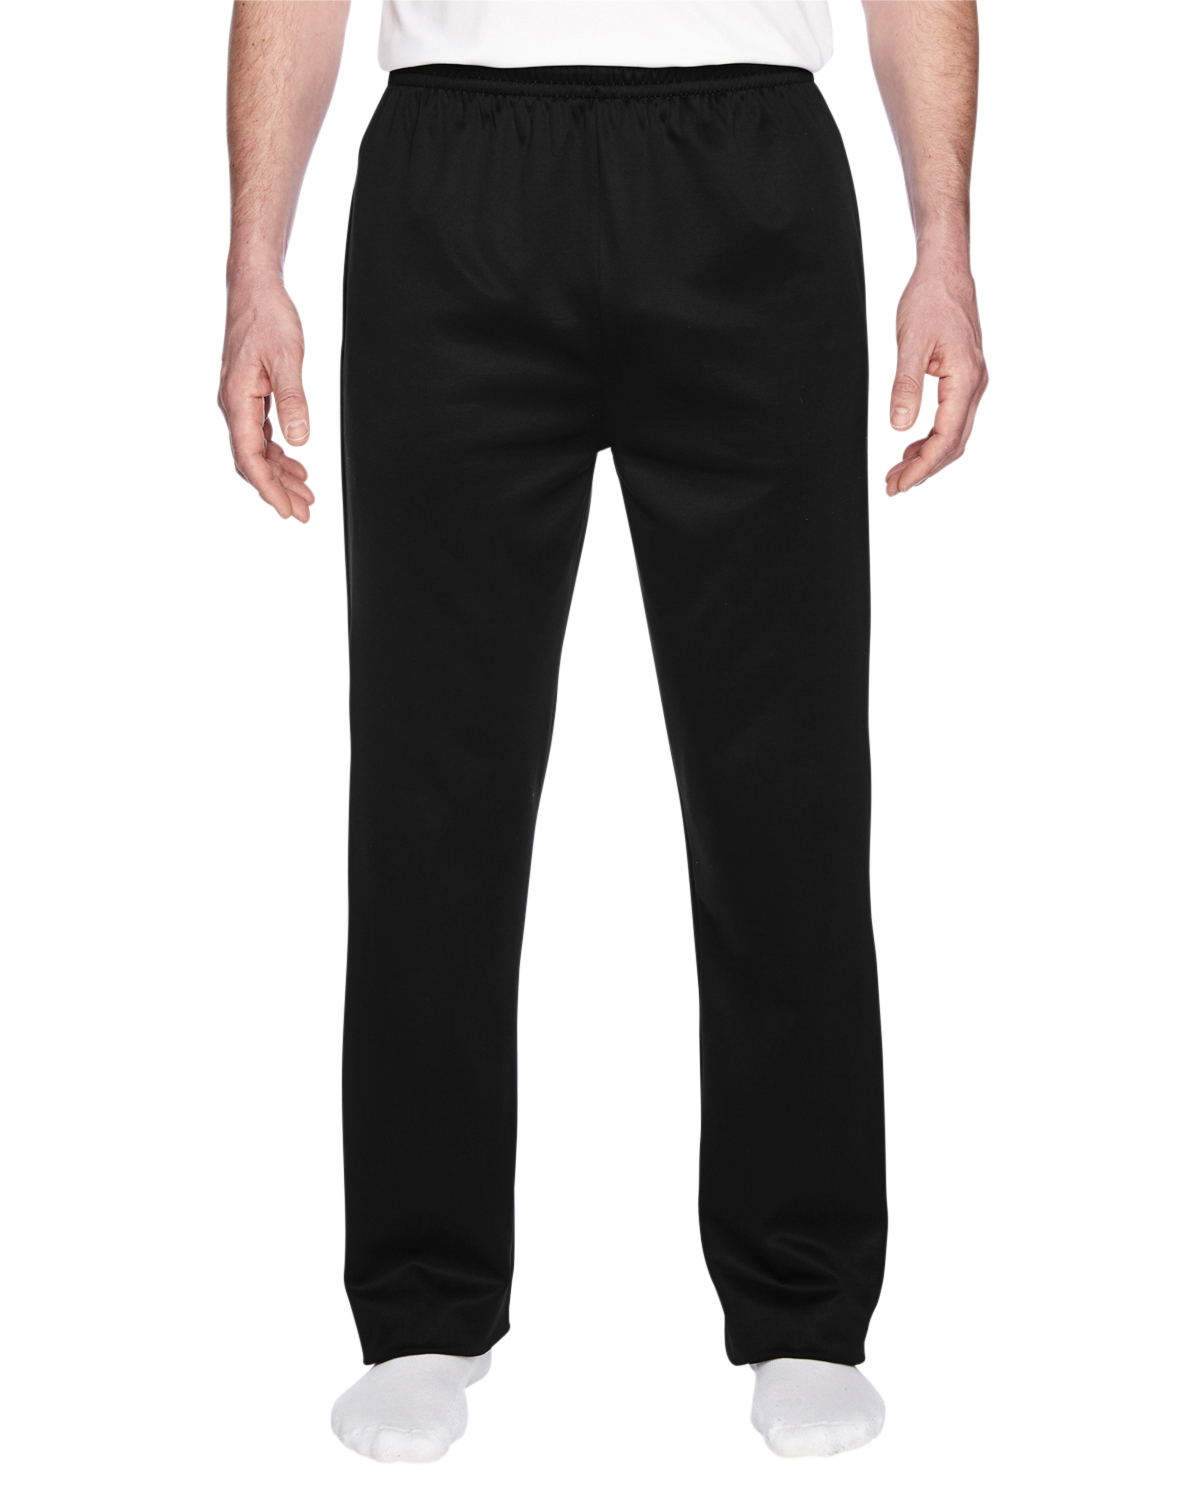 Jerzees PF974MP - 6 oz. Sport Tech Fleece Pant